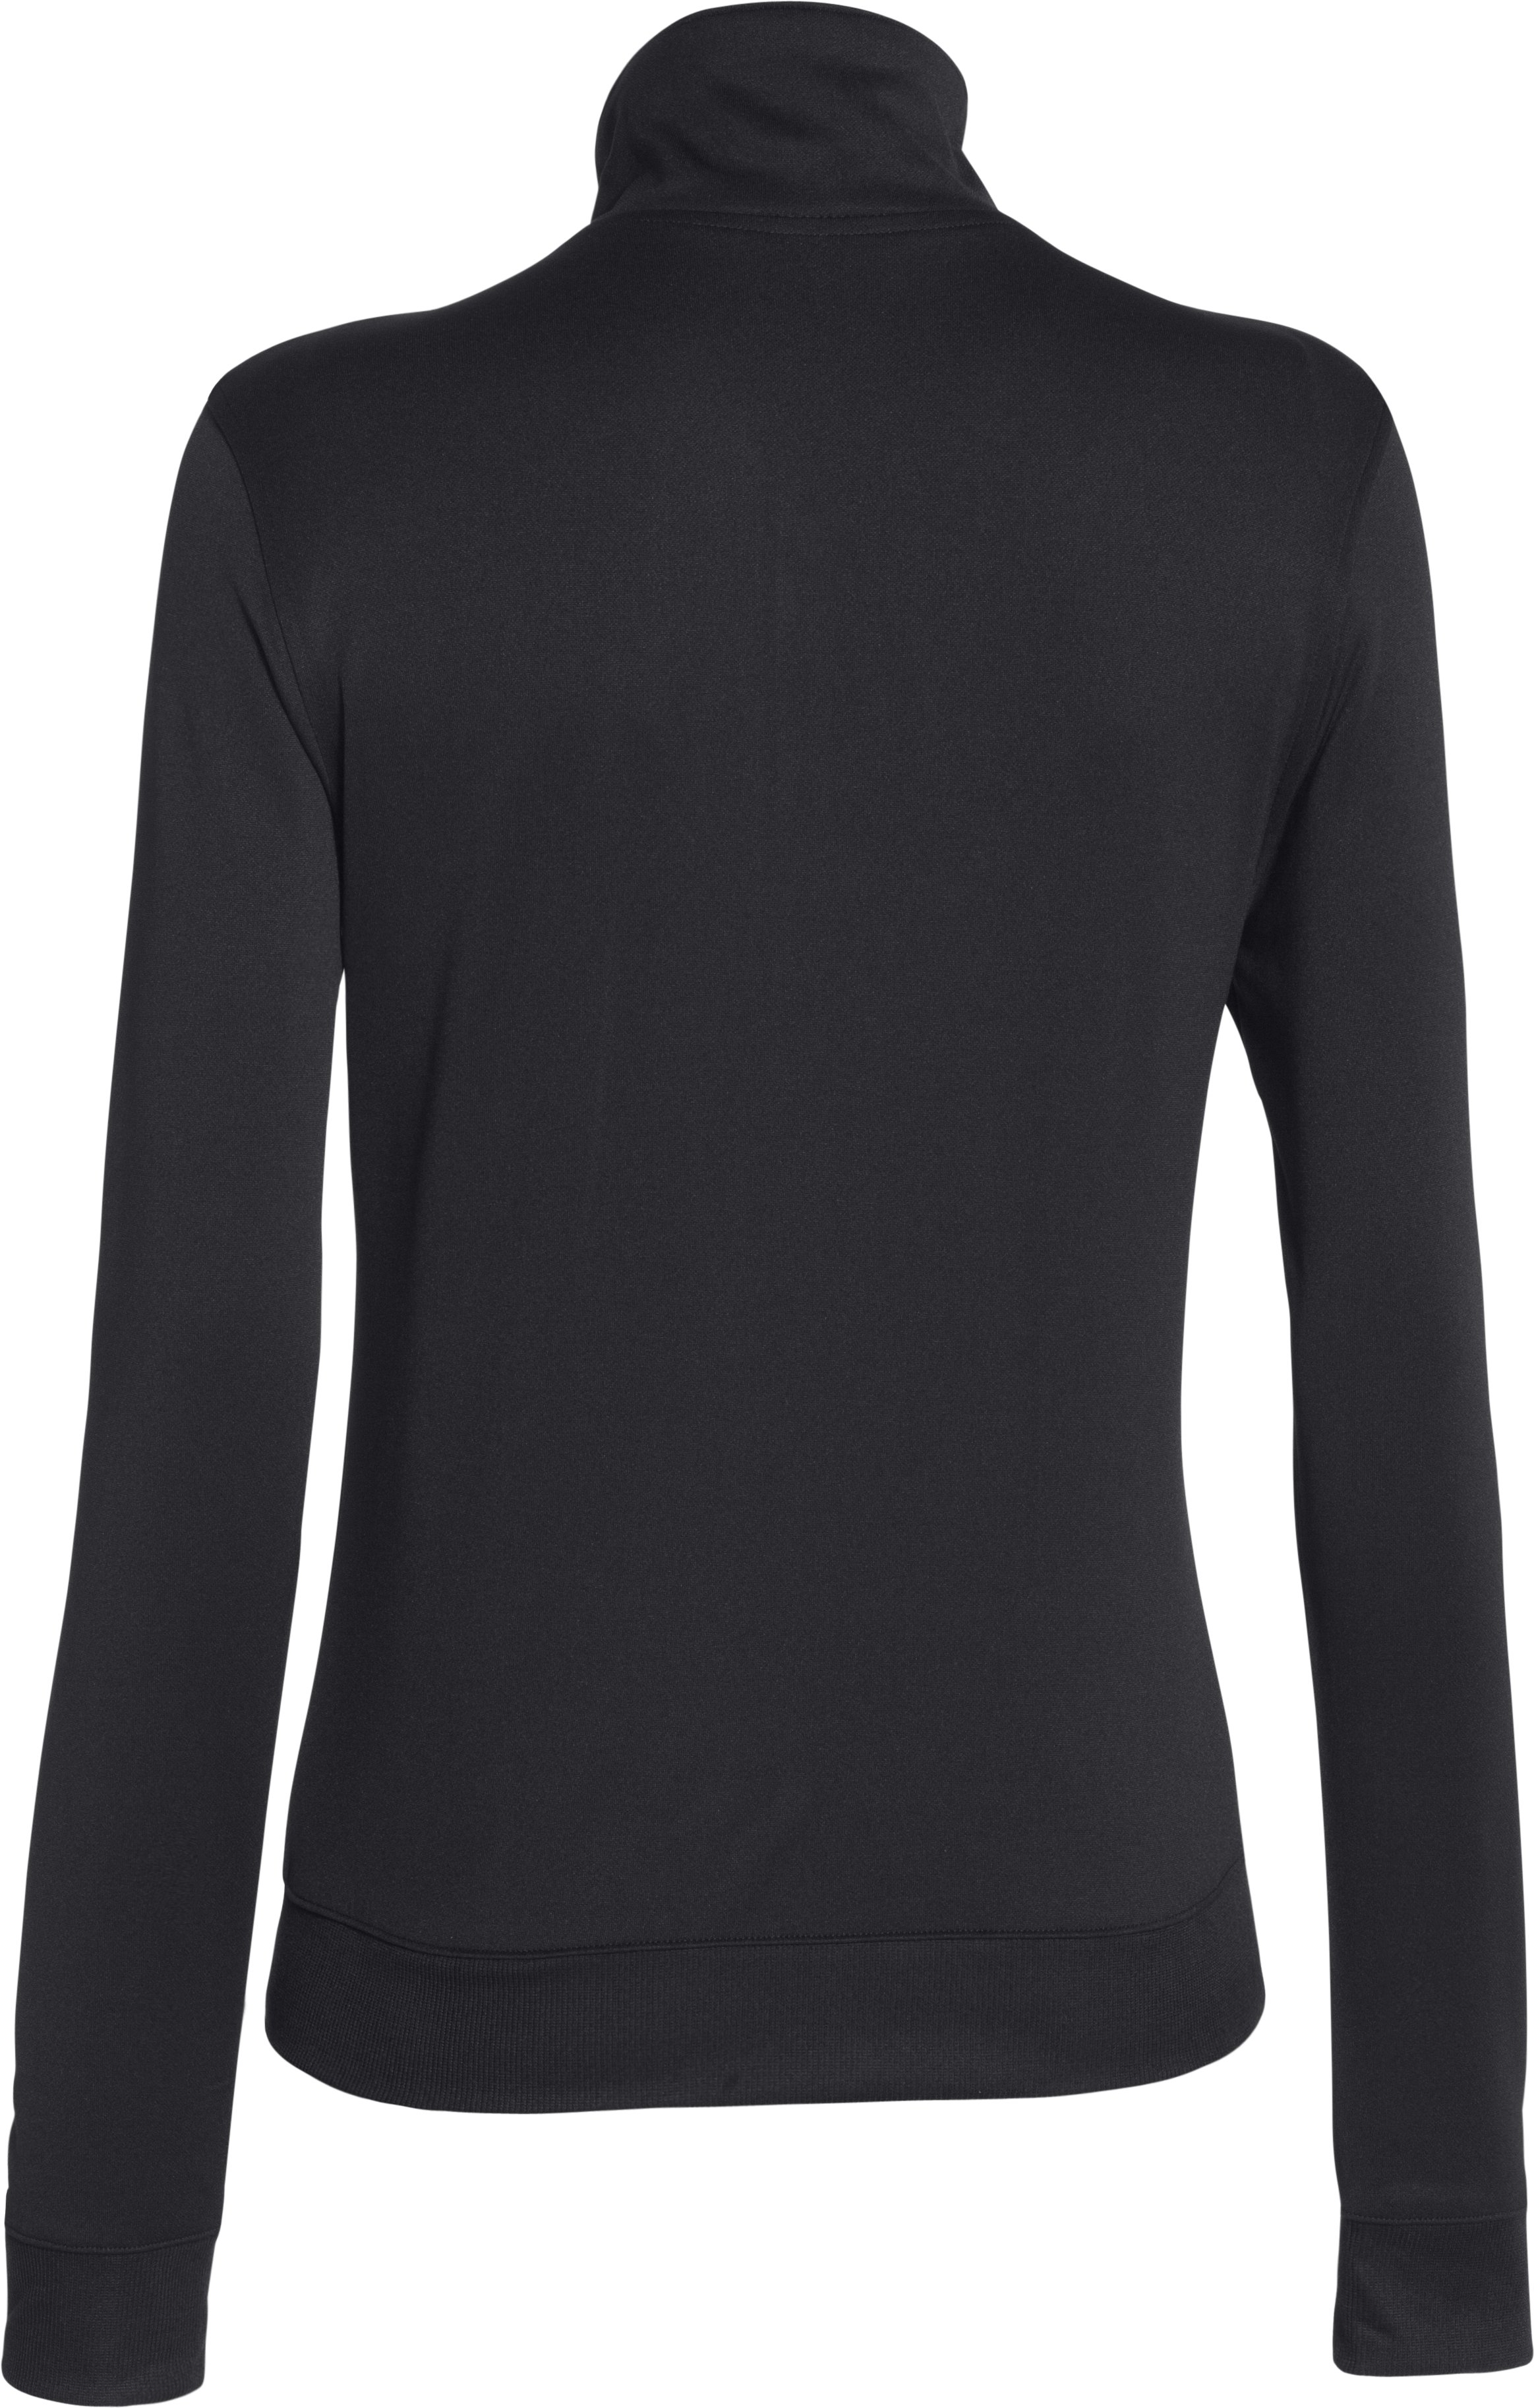 Women's UA Compete Full Zip Jacket, Black , undefined